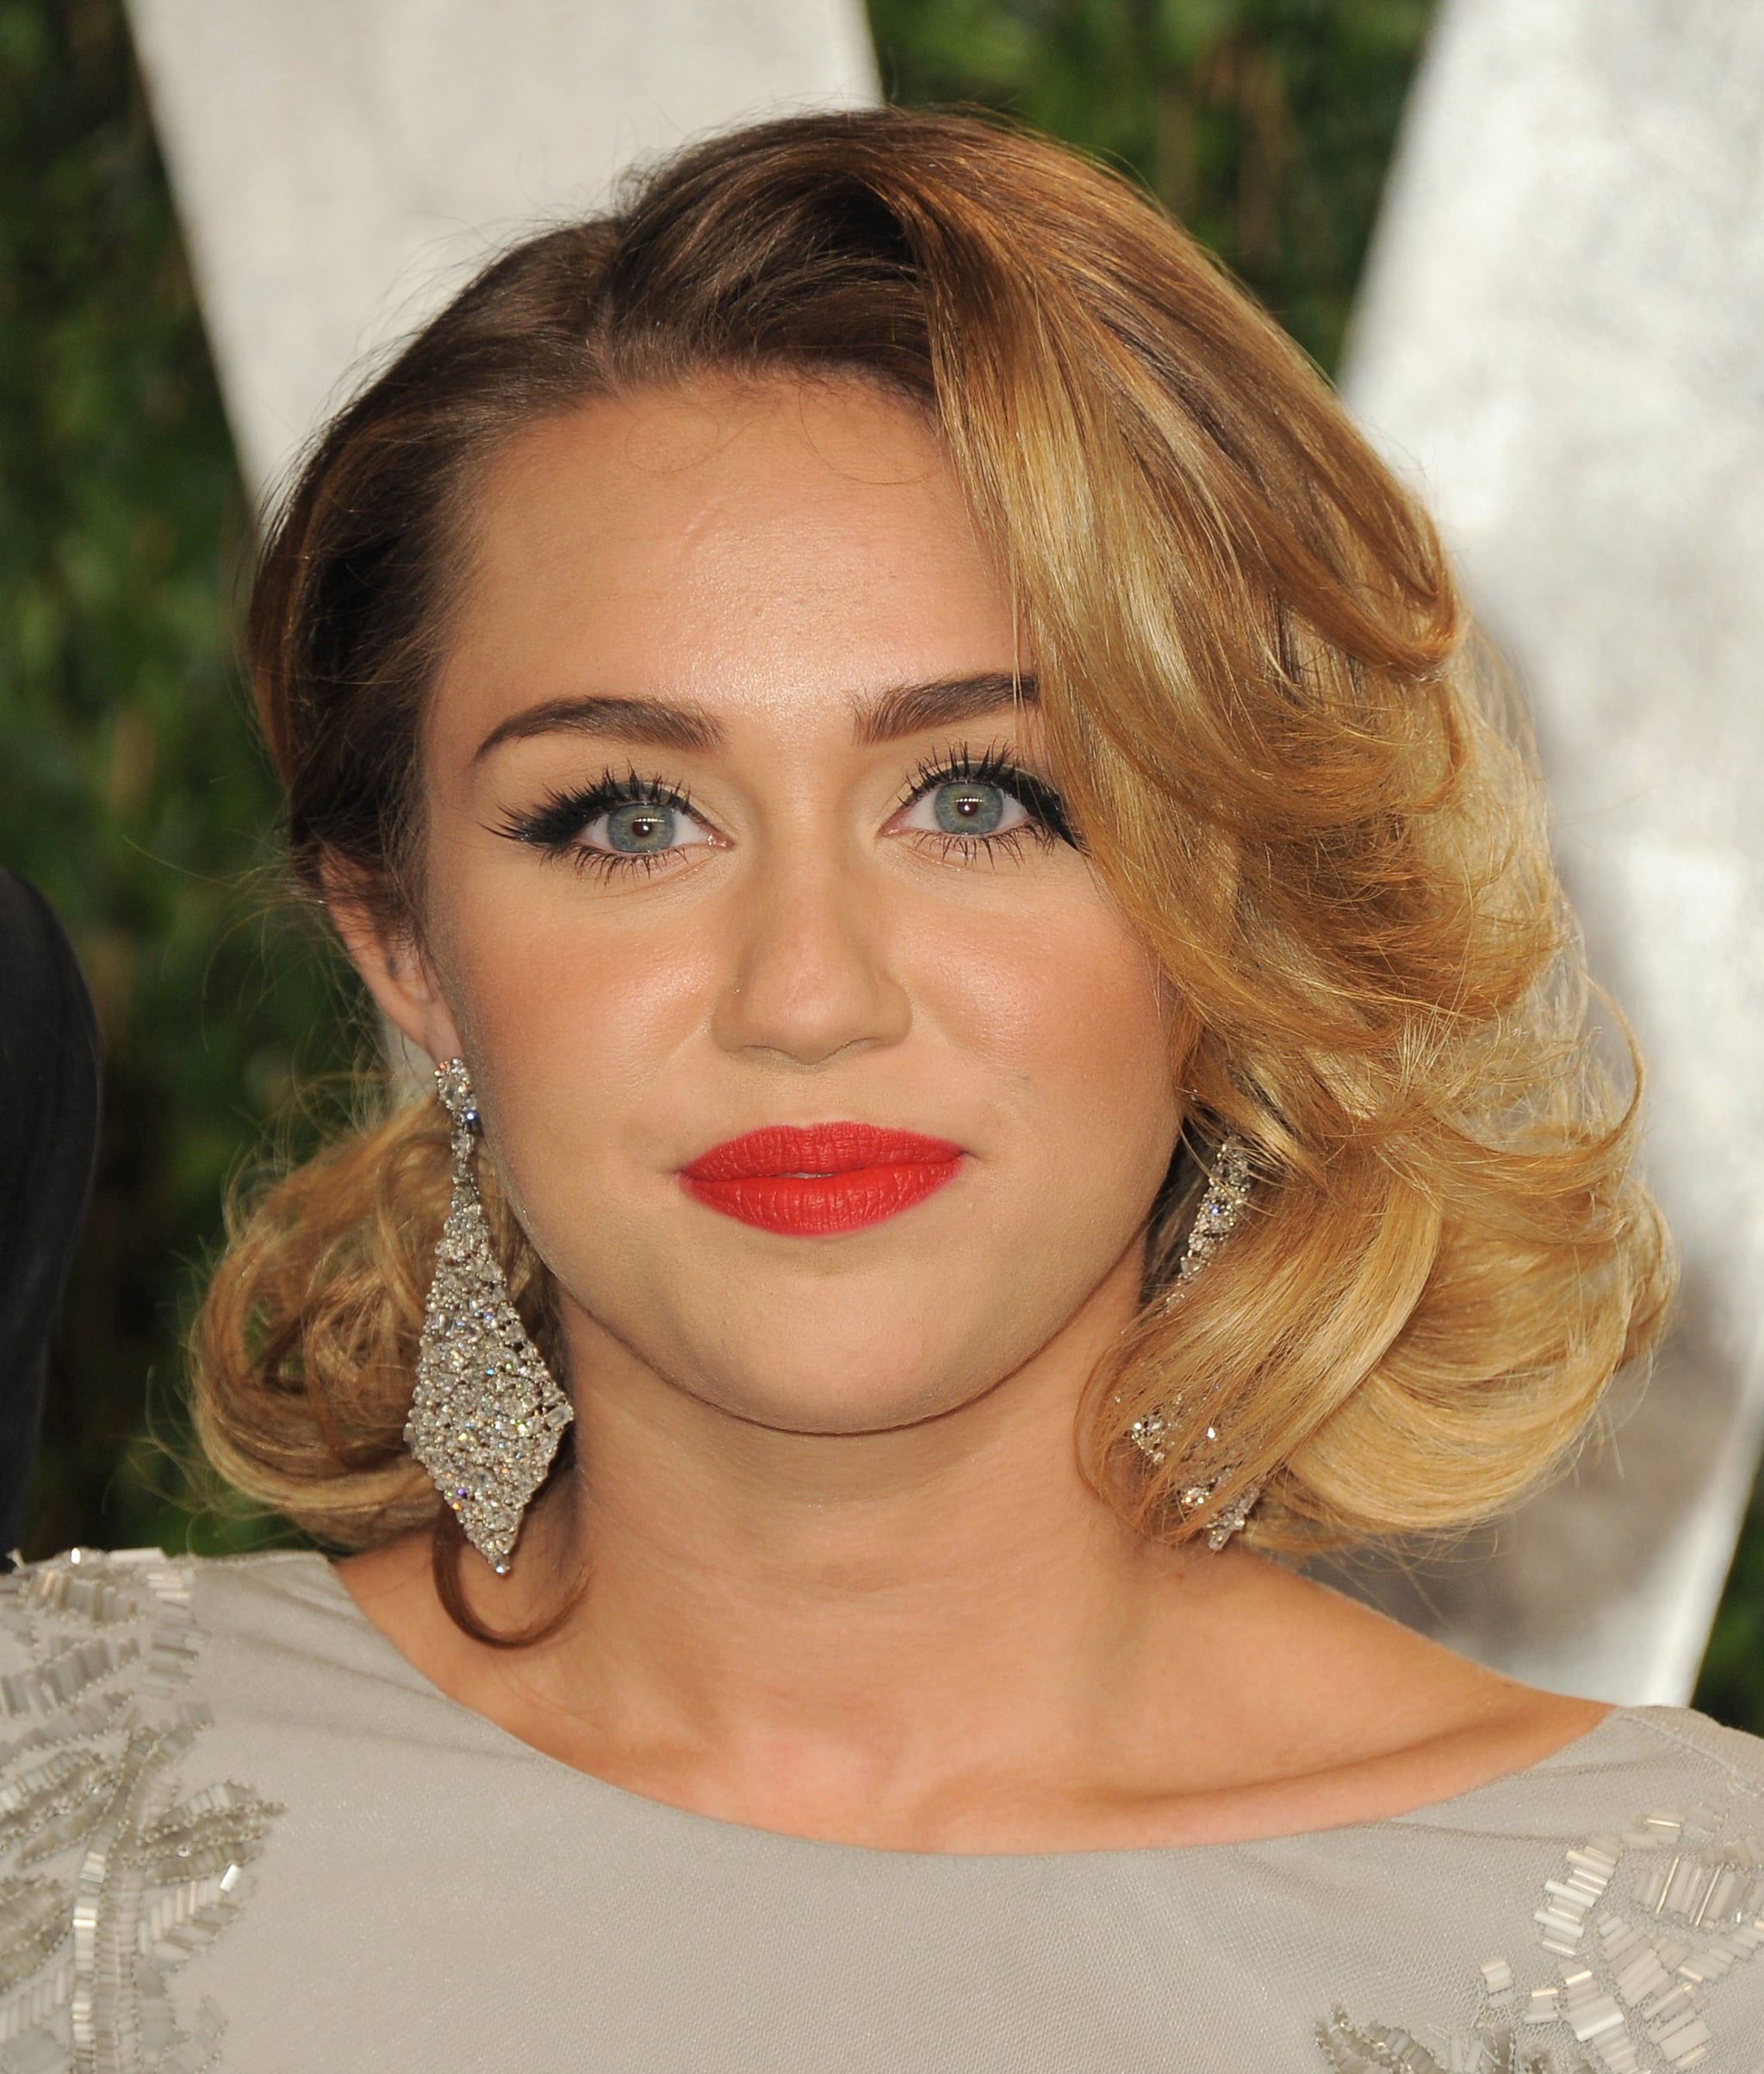 Miley Cyrus up close at the Vanity Fair party.